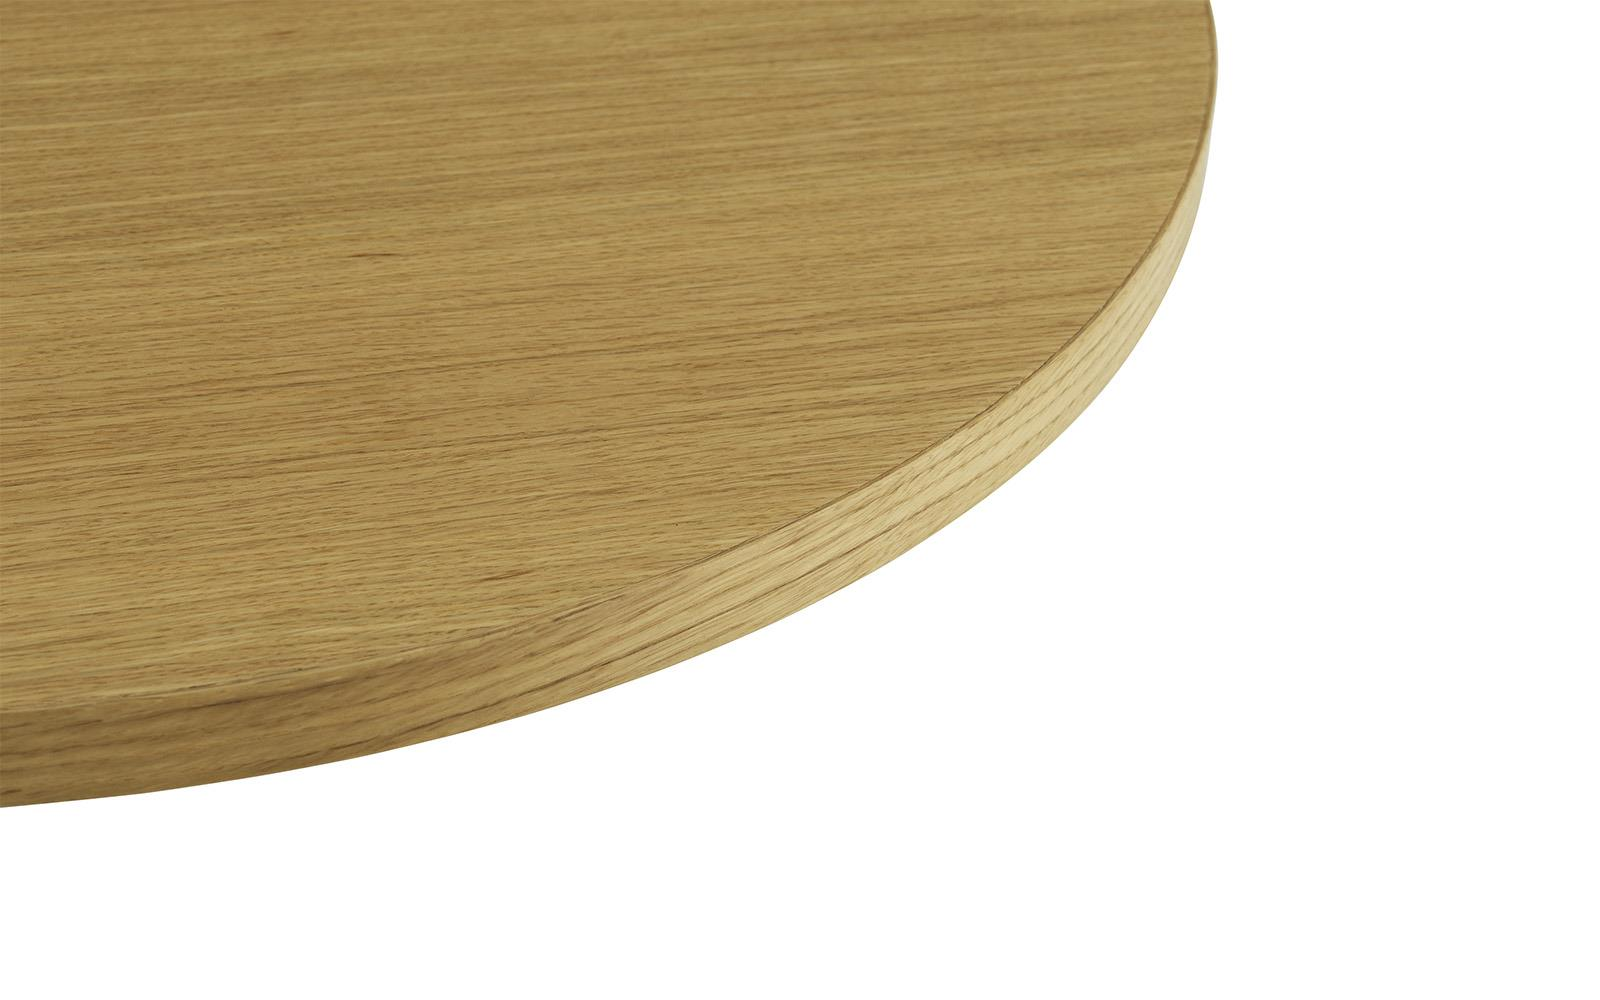 Form Caf Table Wood 70xH65 cm2